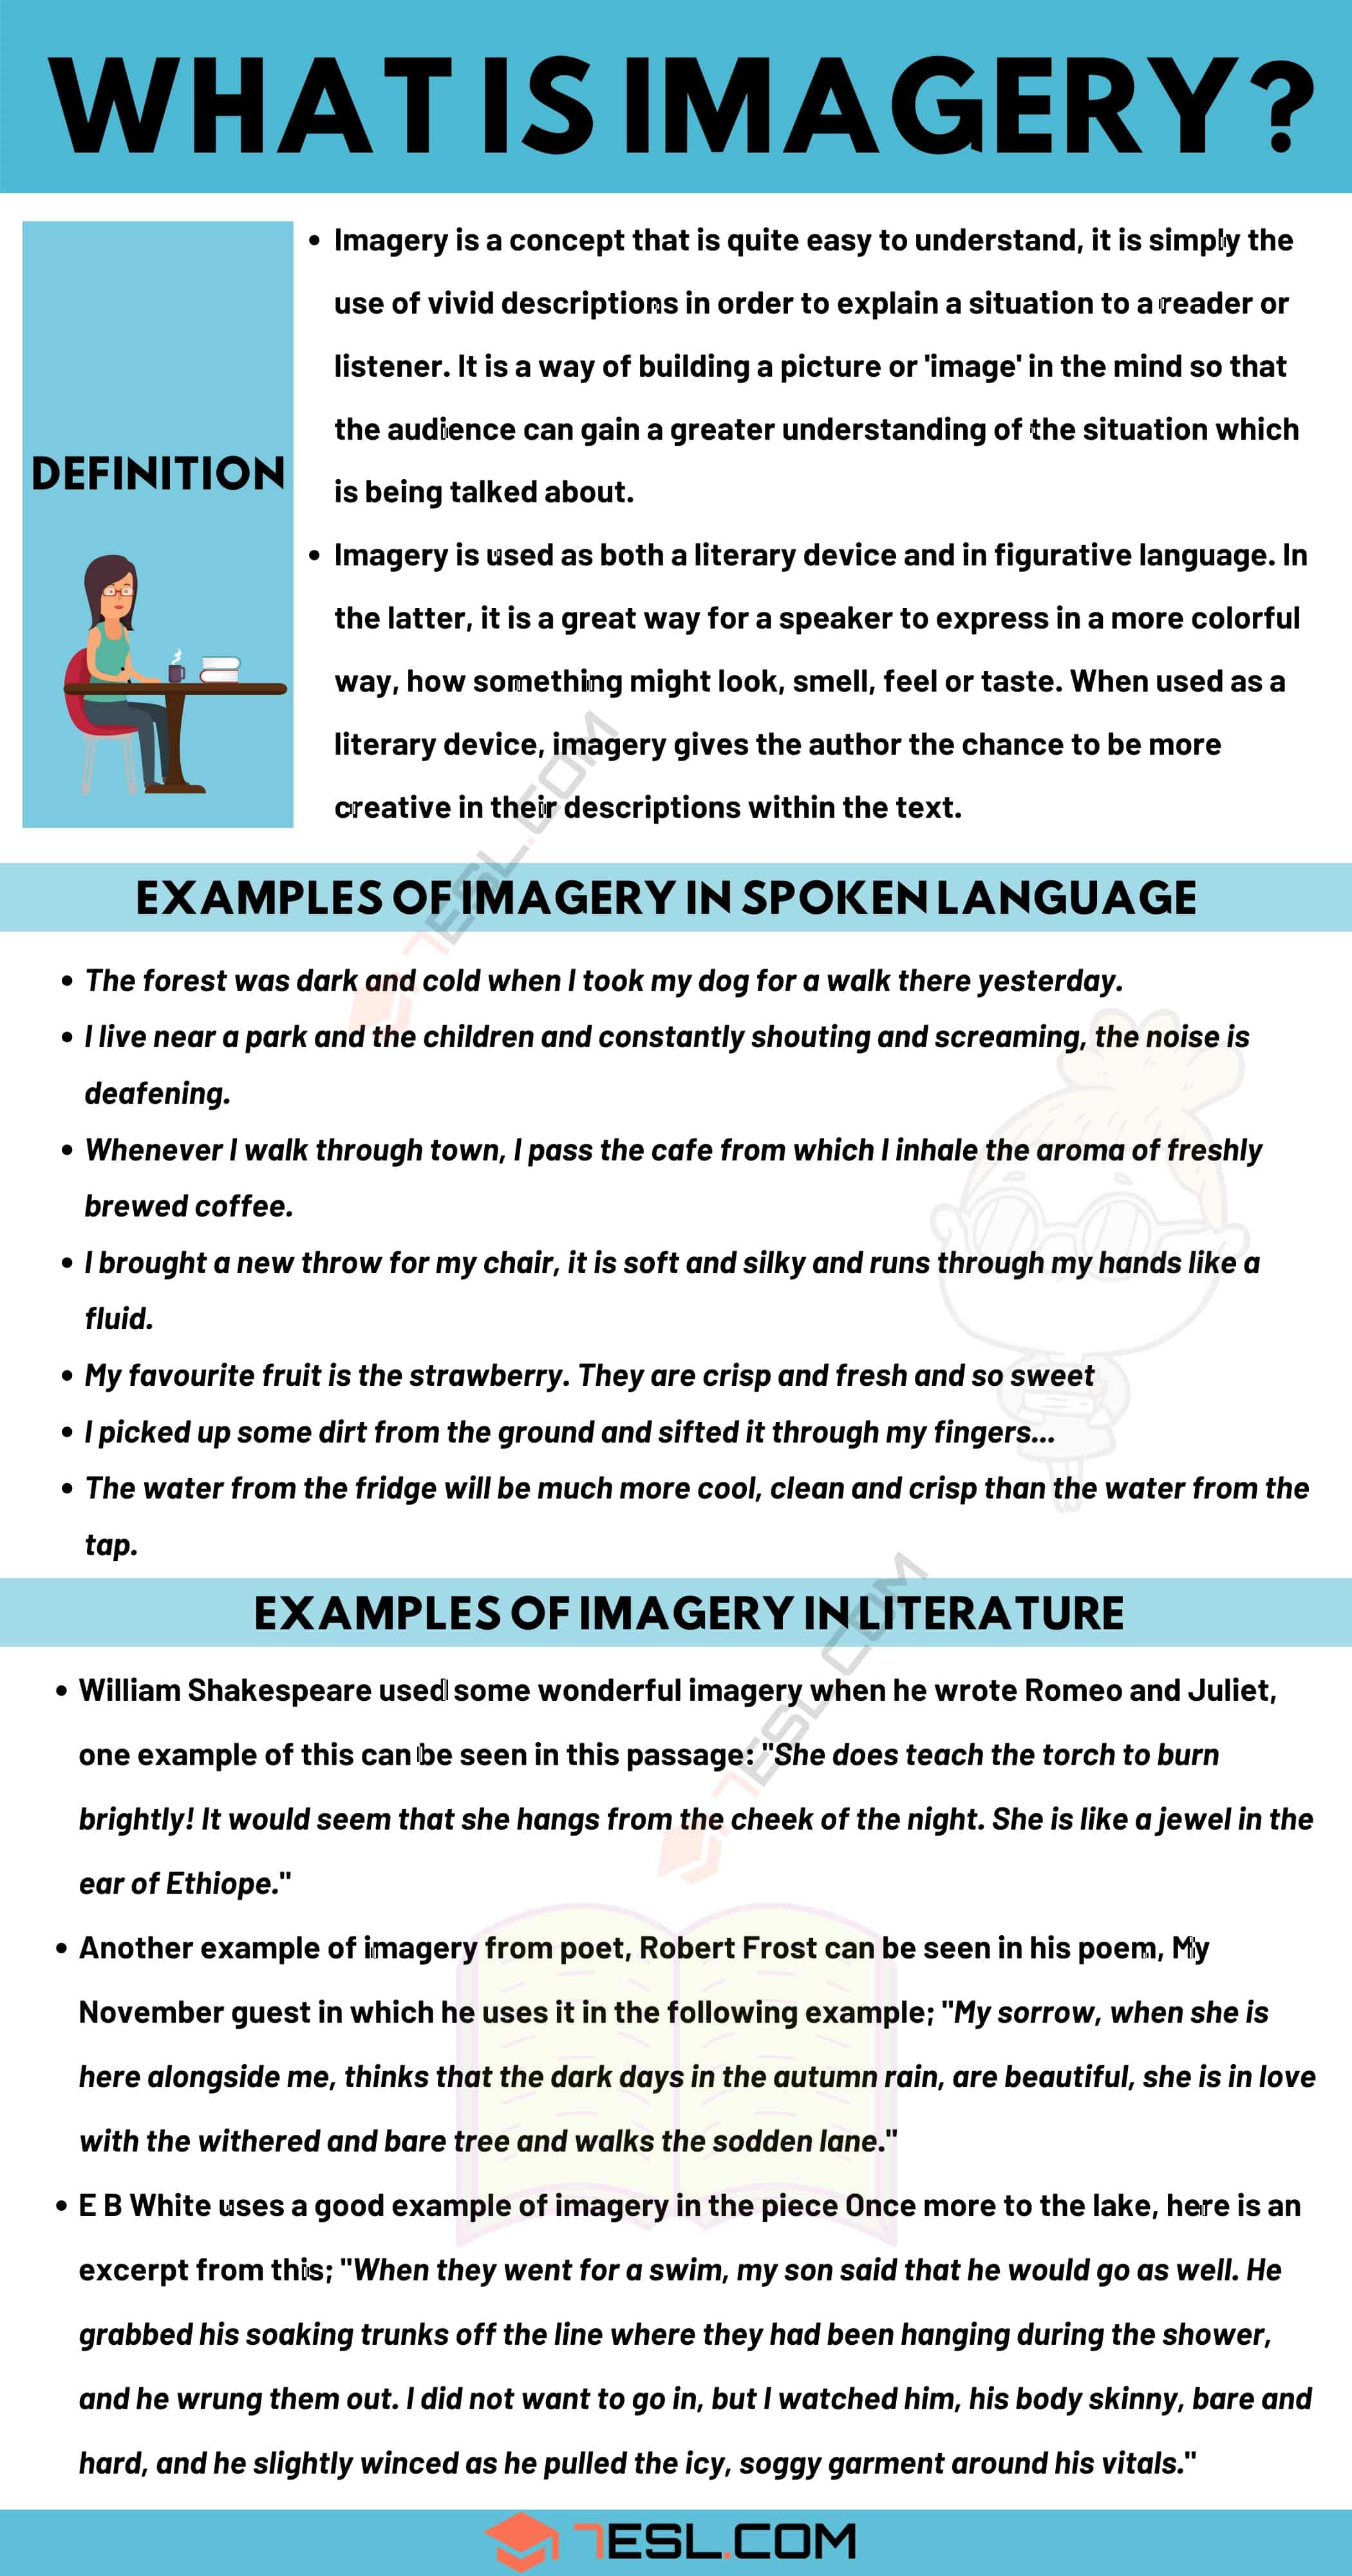 Imagery: Definition and Useful Examples of Imagery in Spoken Language and Literature